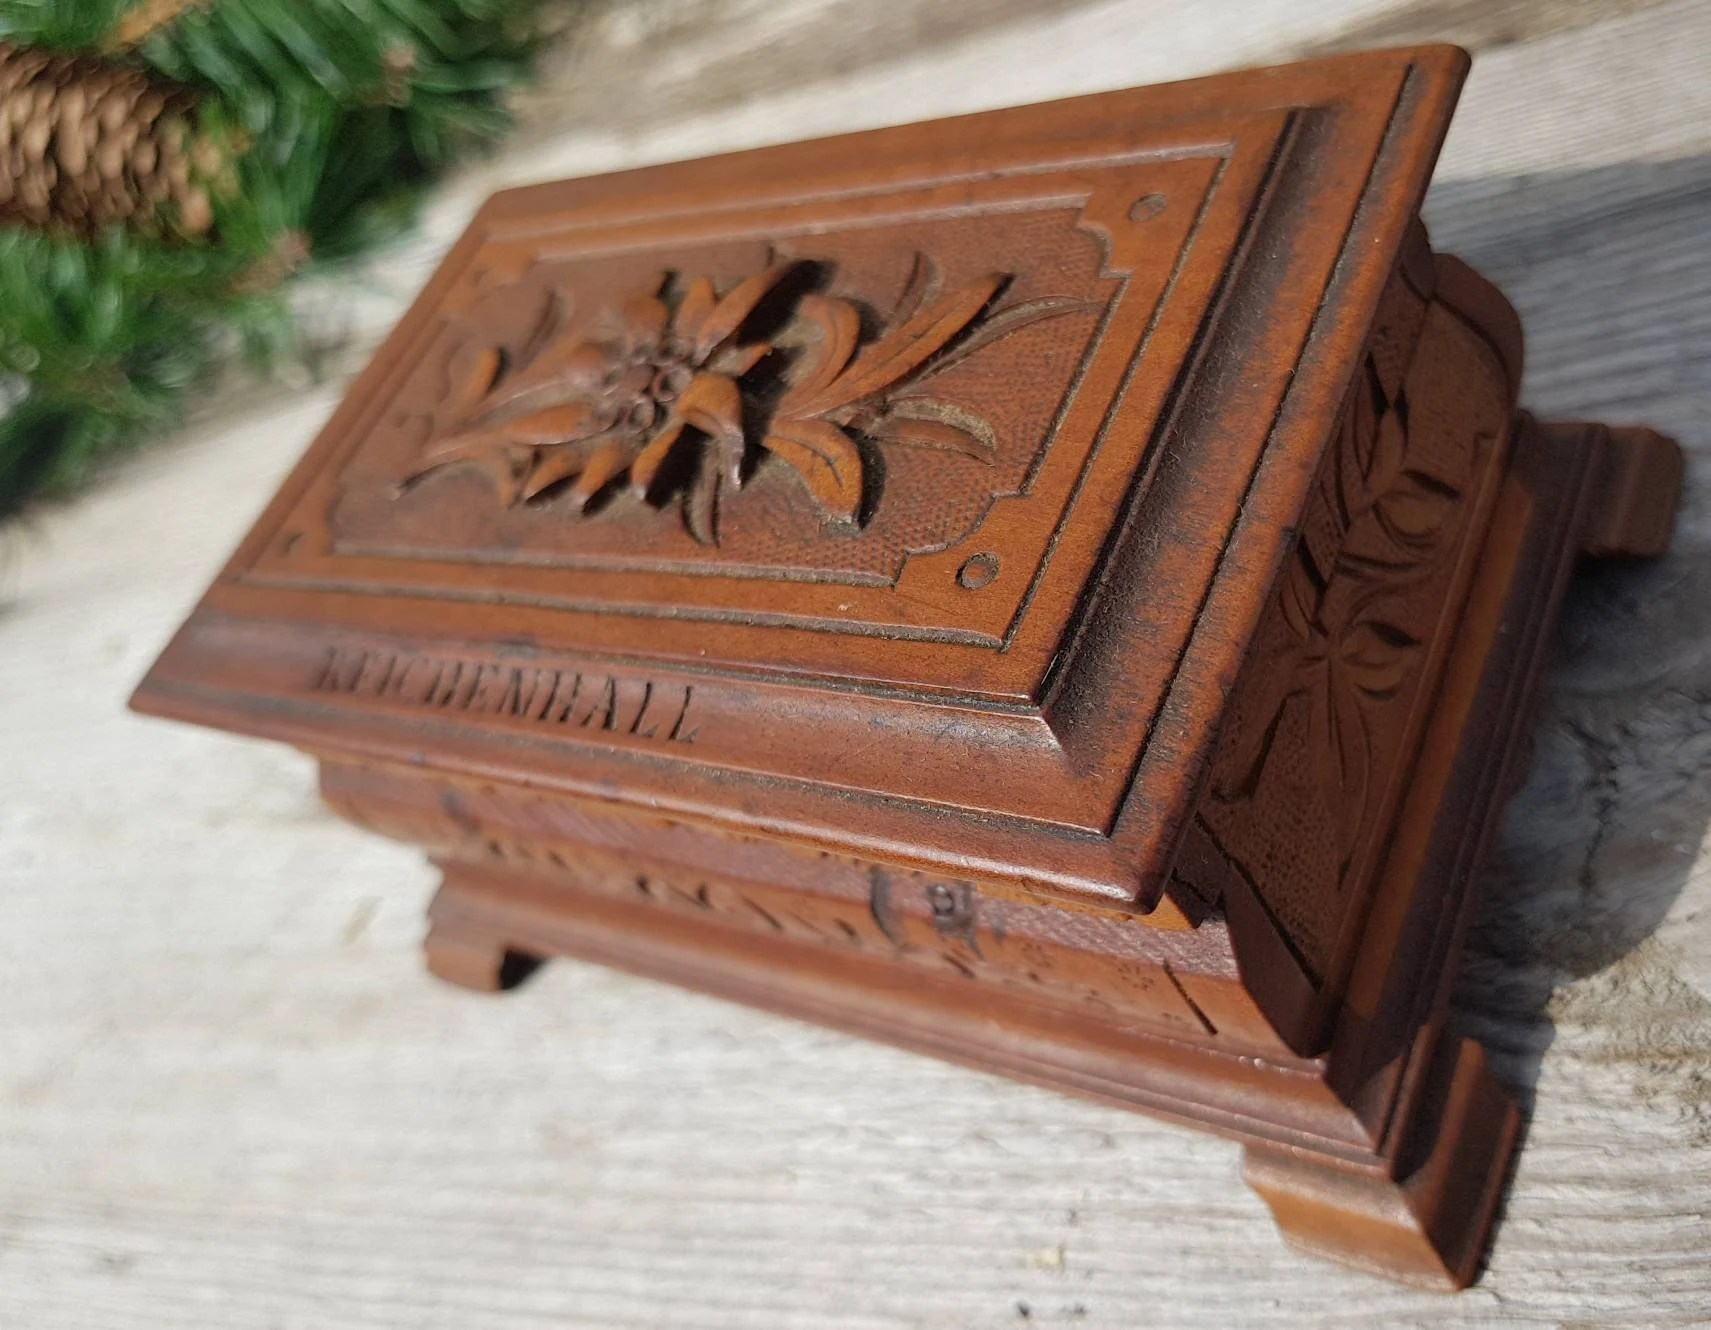 Bad Shabby Chic Edelweiss Happy To See You Vintage German Wood Box Handmade Traditional Bavarian Decor Shabby Chic Jewelry Box Bad Reichenhall Shipping Inc